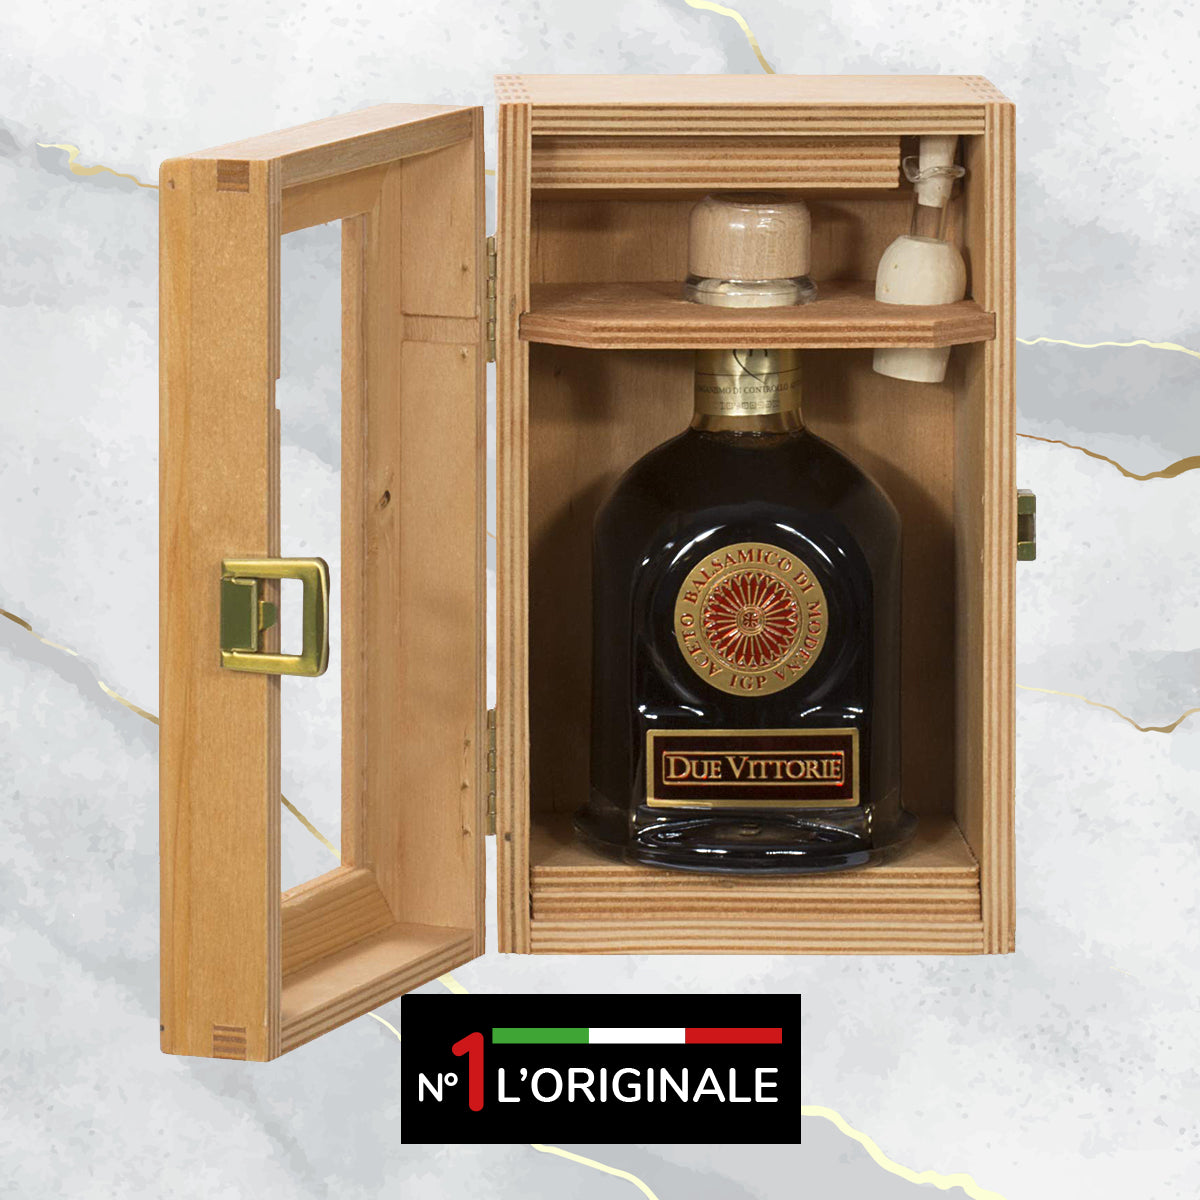 Due Vittorie Oro Gold Balsamic Vinegar Special Edition - with Pourer in Wooden Gift Box - 8.45fl oz/250ml